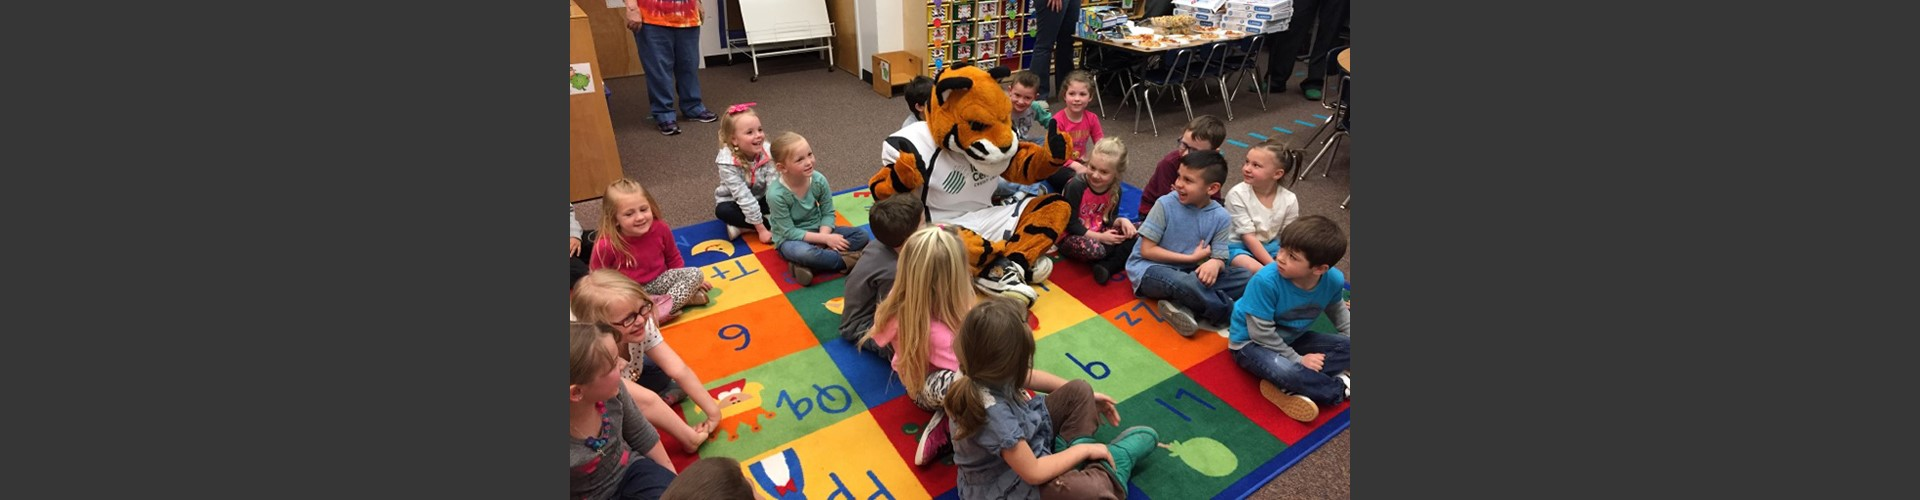 Idaho State University tiger mascot sitting on the floor with the kids.